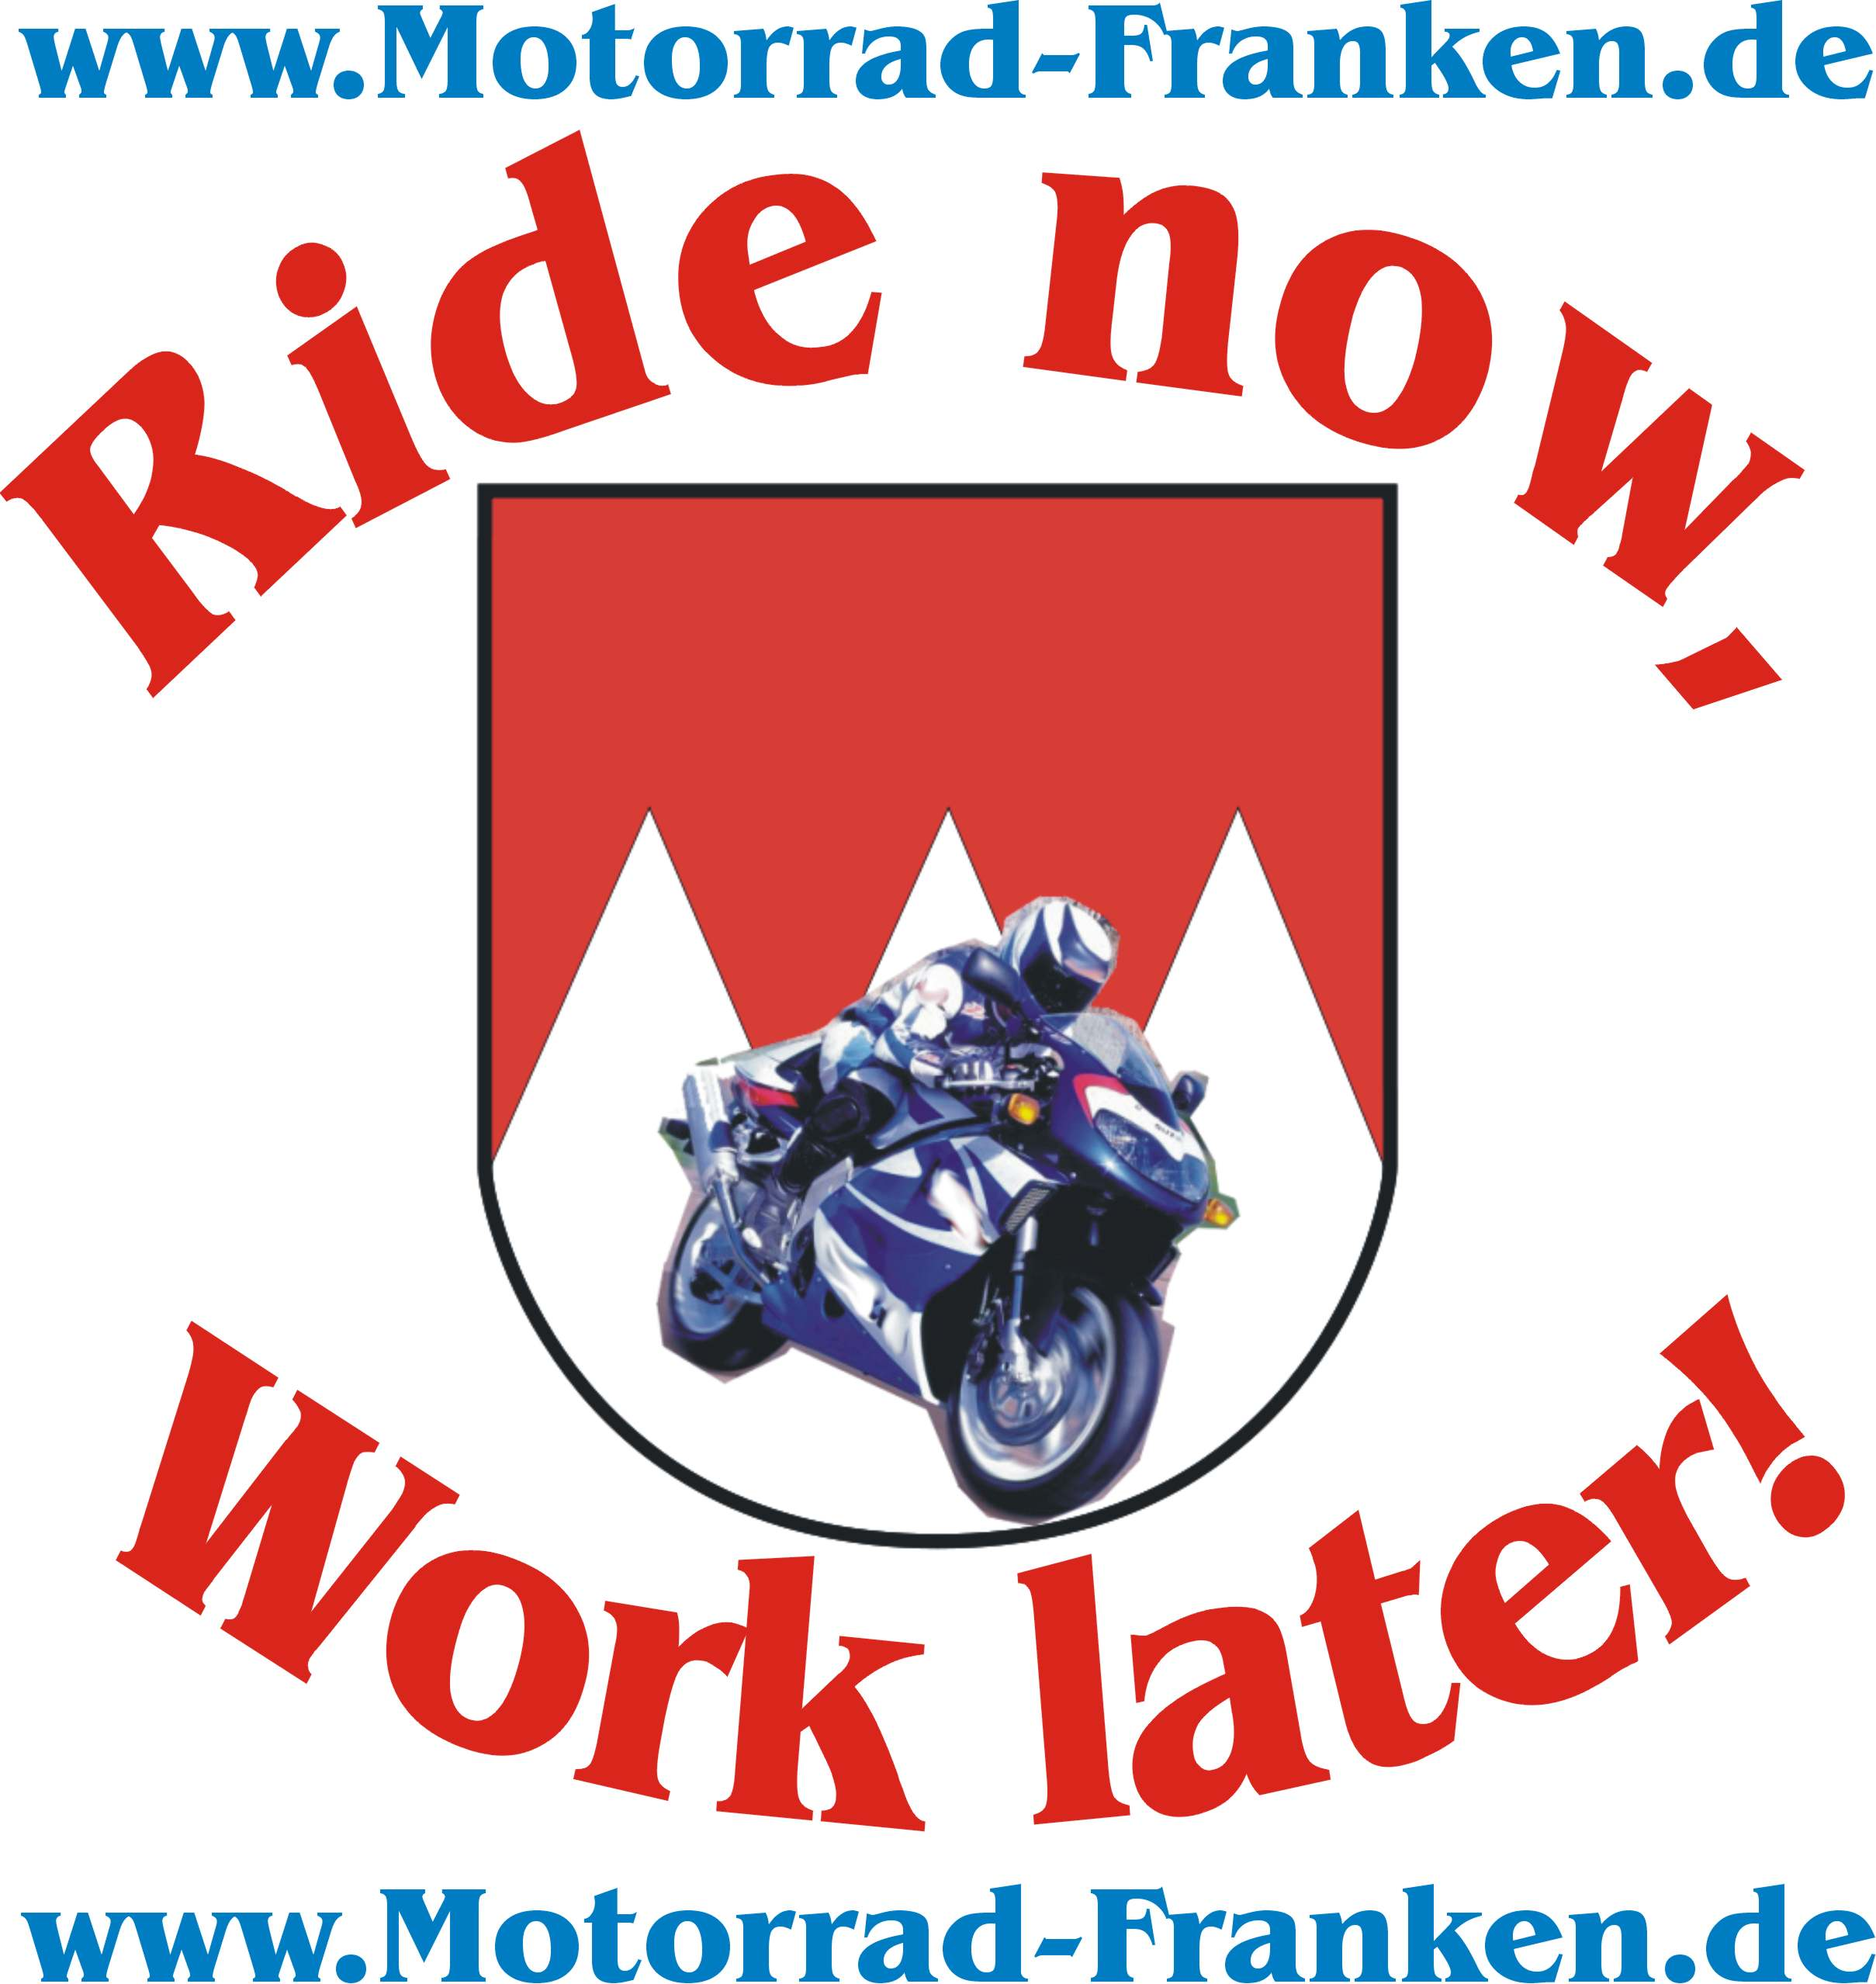 www.motorrad-franken.de Ride now - work later